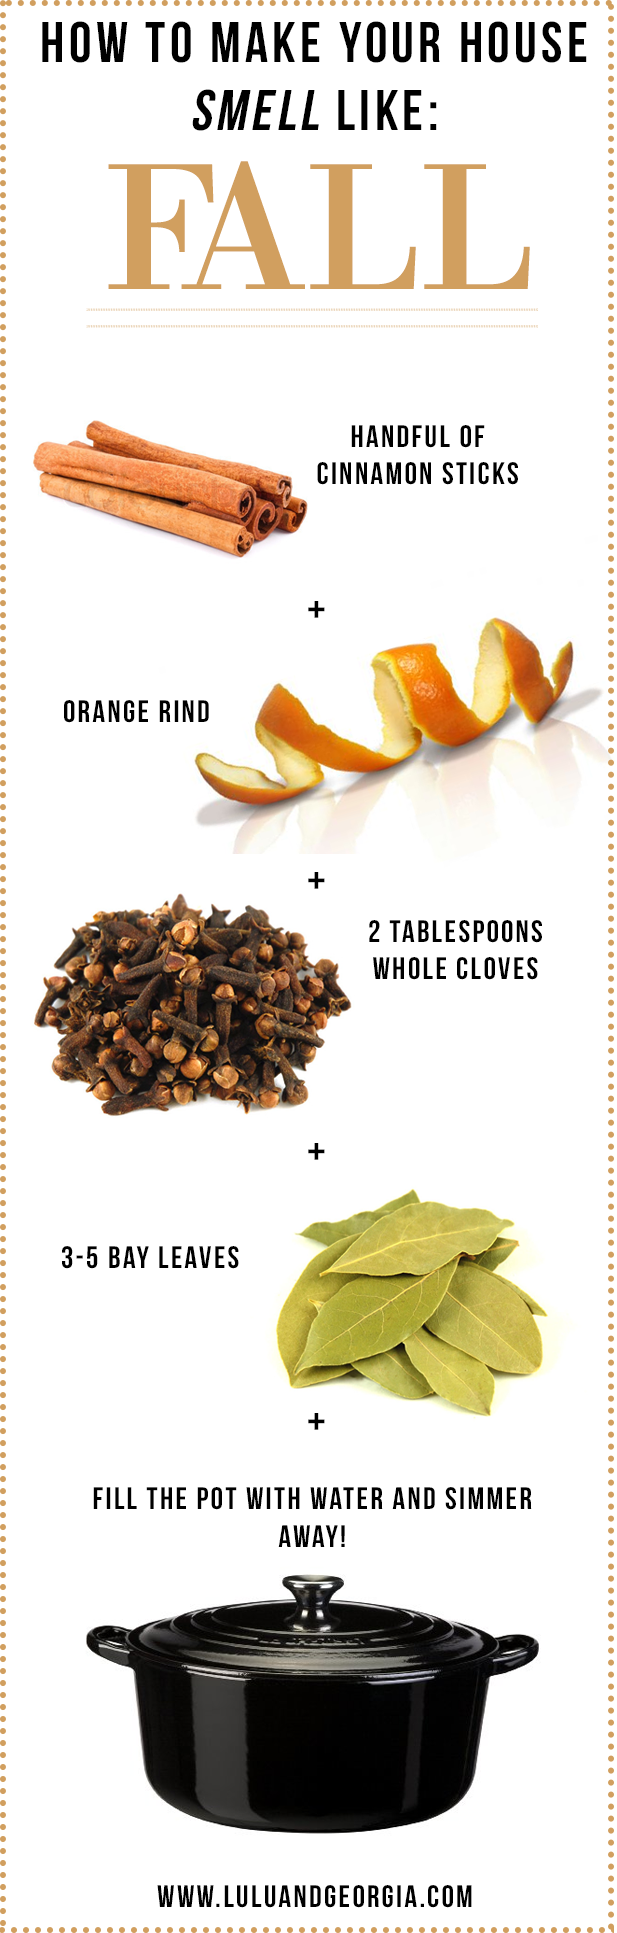 How to make your house smell like FALL: Add cinnamon sticks, some ...